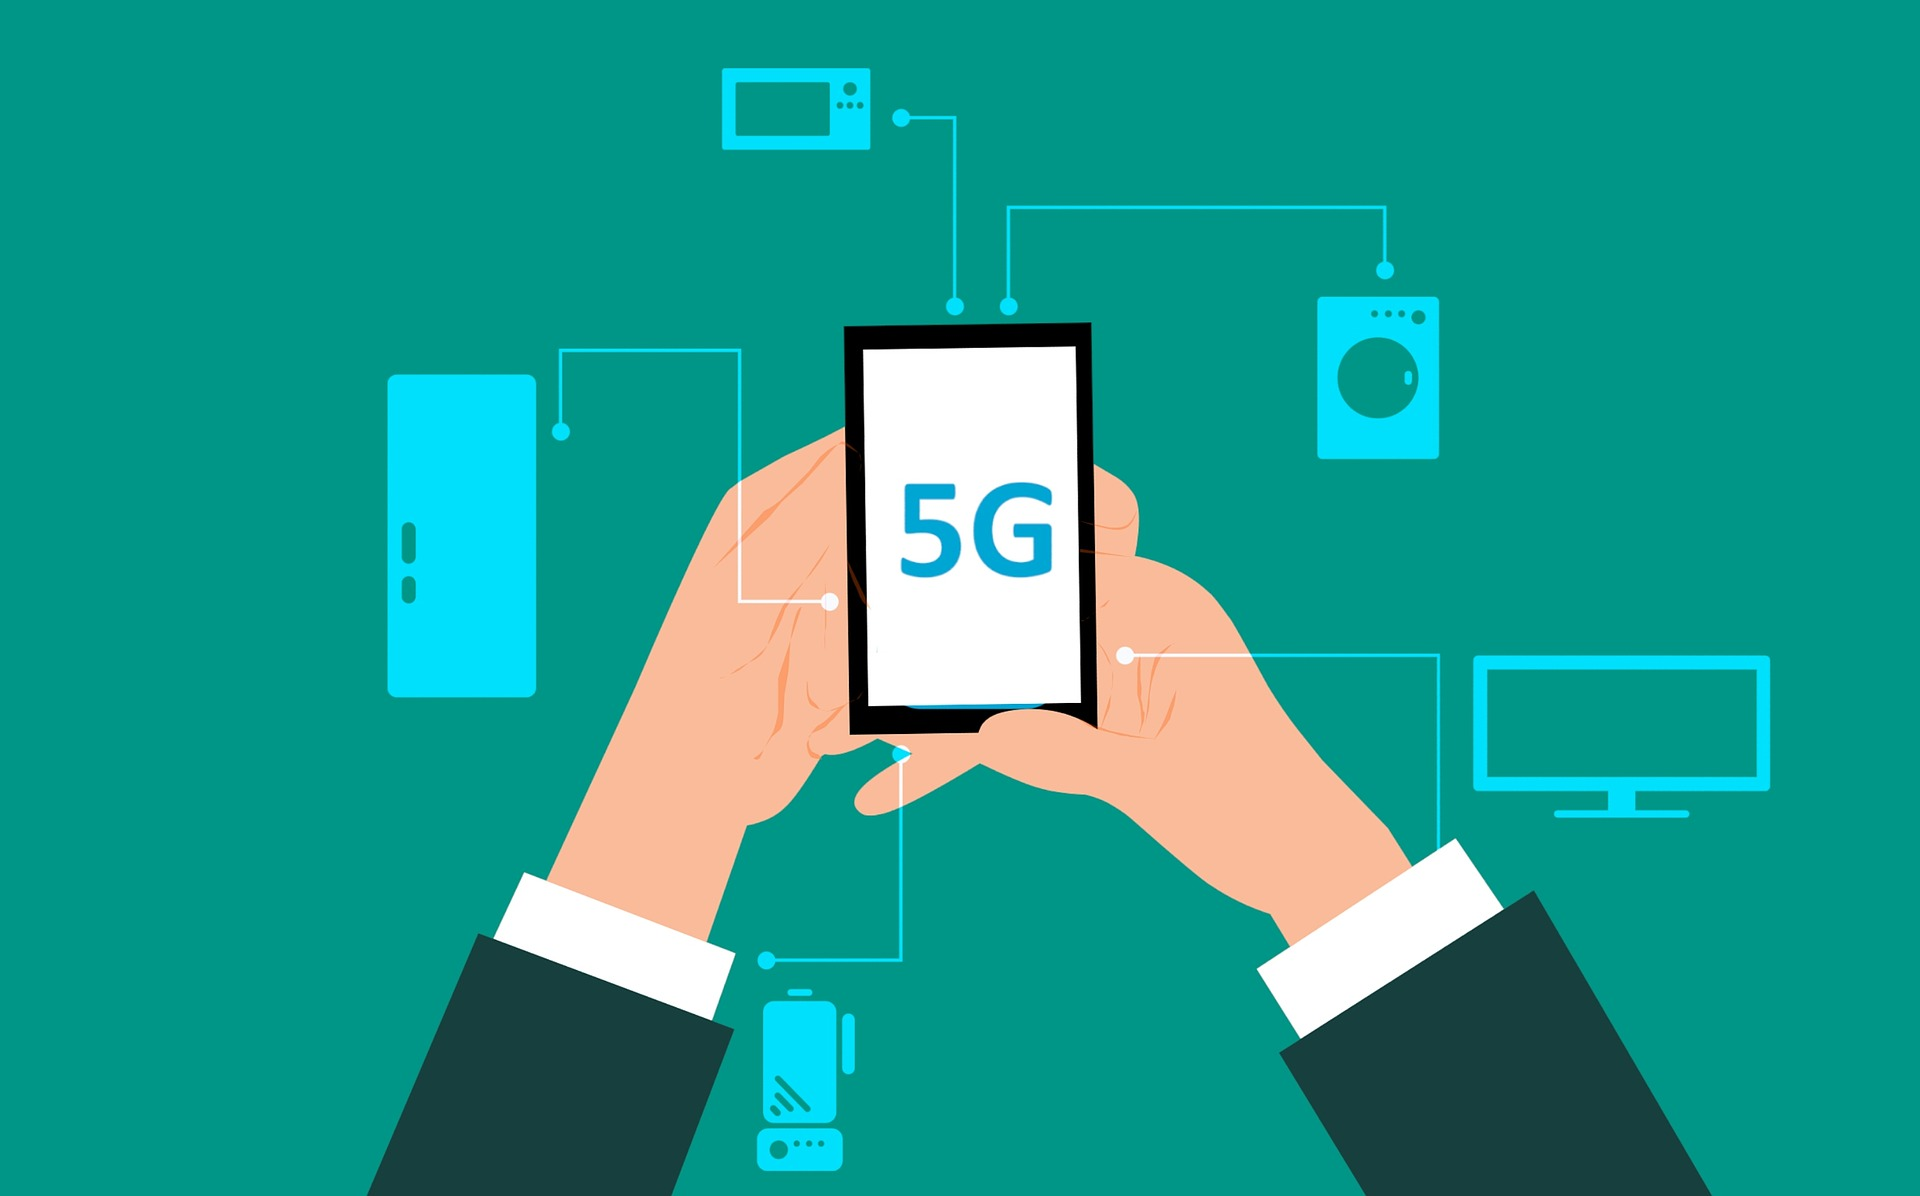 Will The Melding of 5G And Blockchain Add Enormous Economic Value?